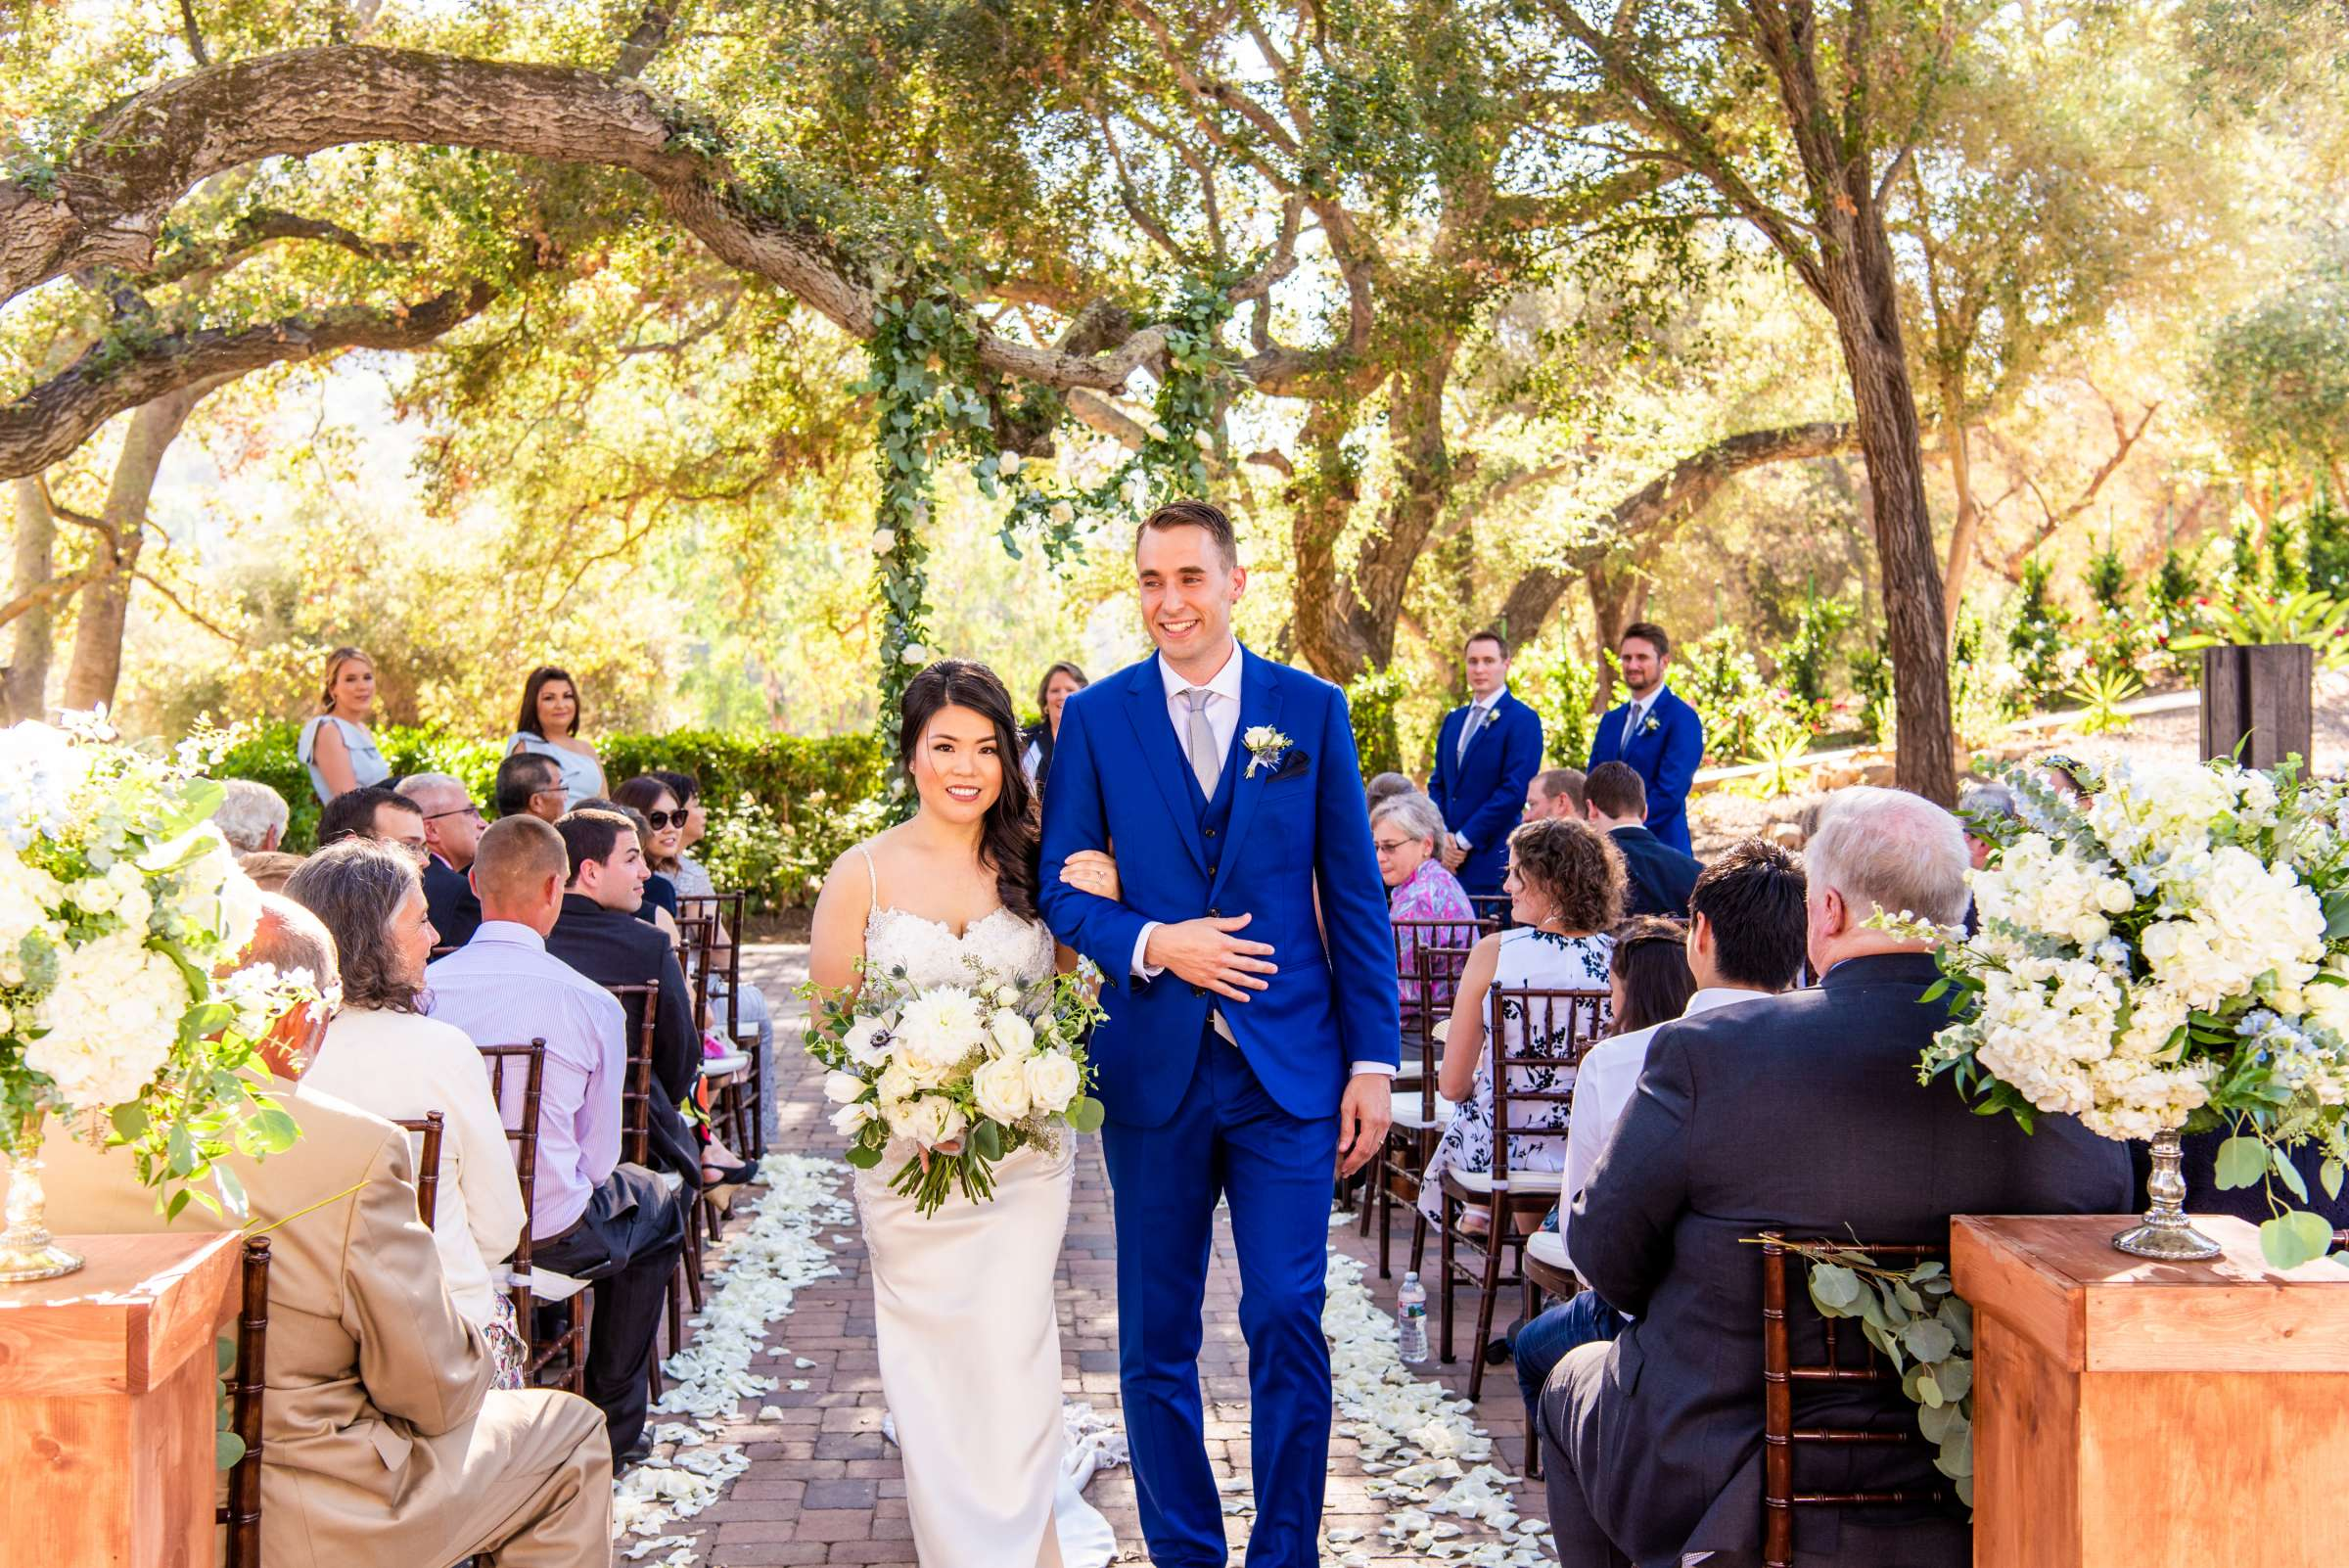 Mt Woodson Castle Wedding coordinated by I Do Weddings, Aya and Jared Wedding Photo #486949 by True Photography